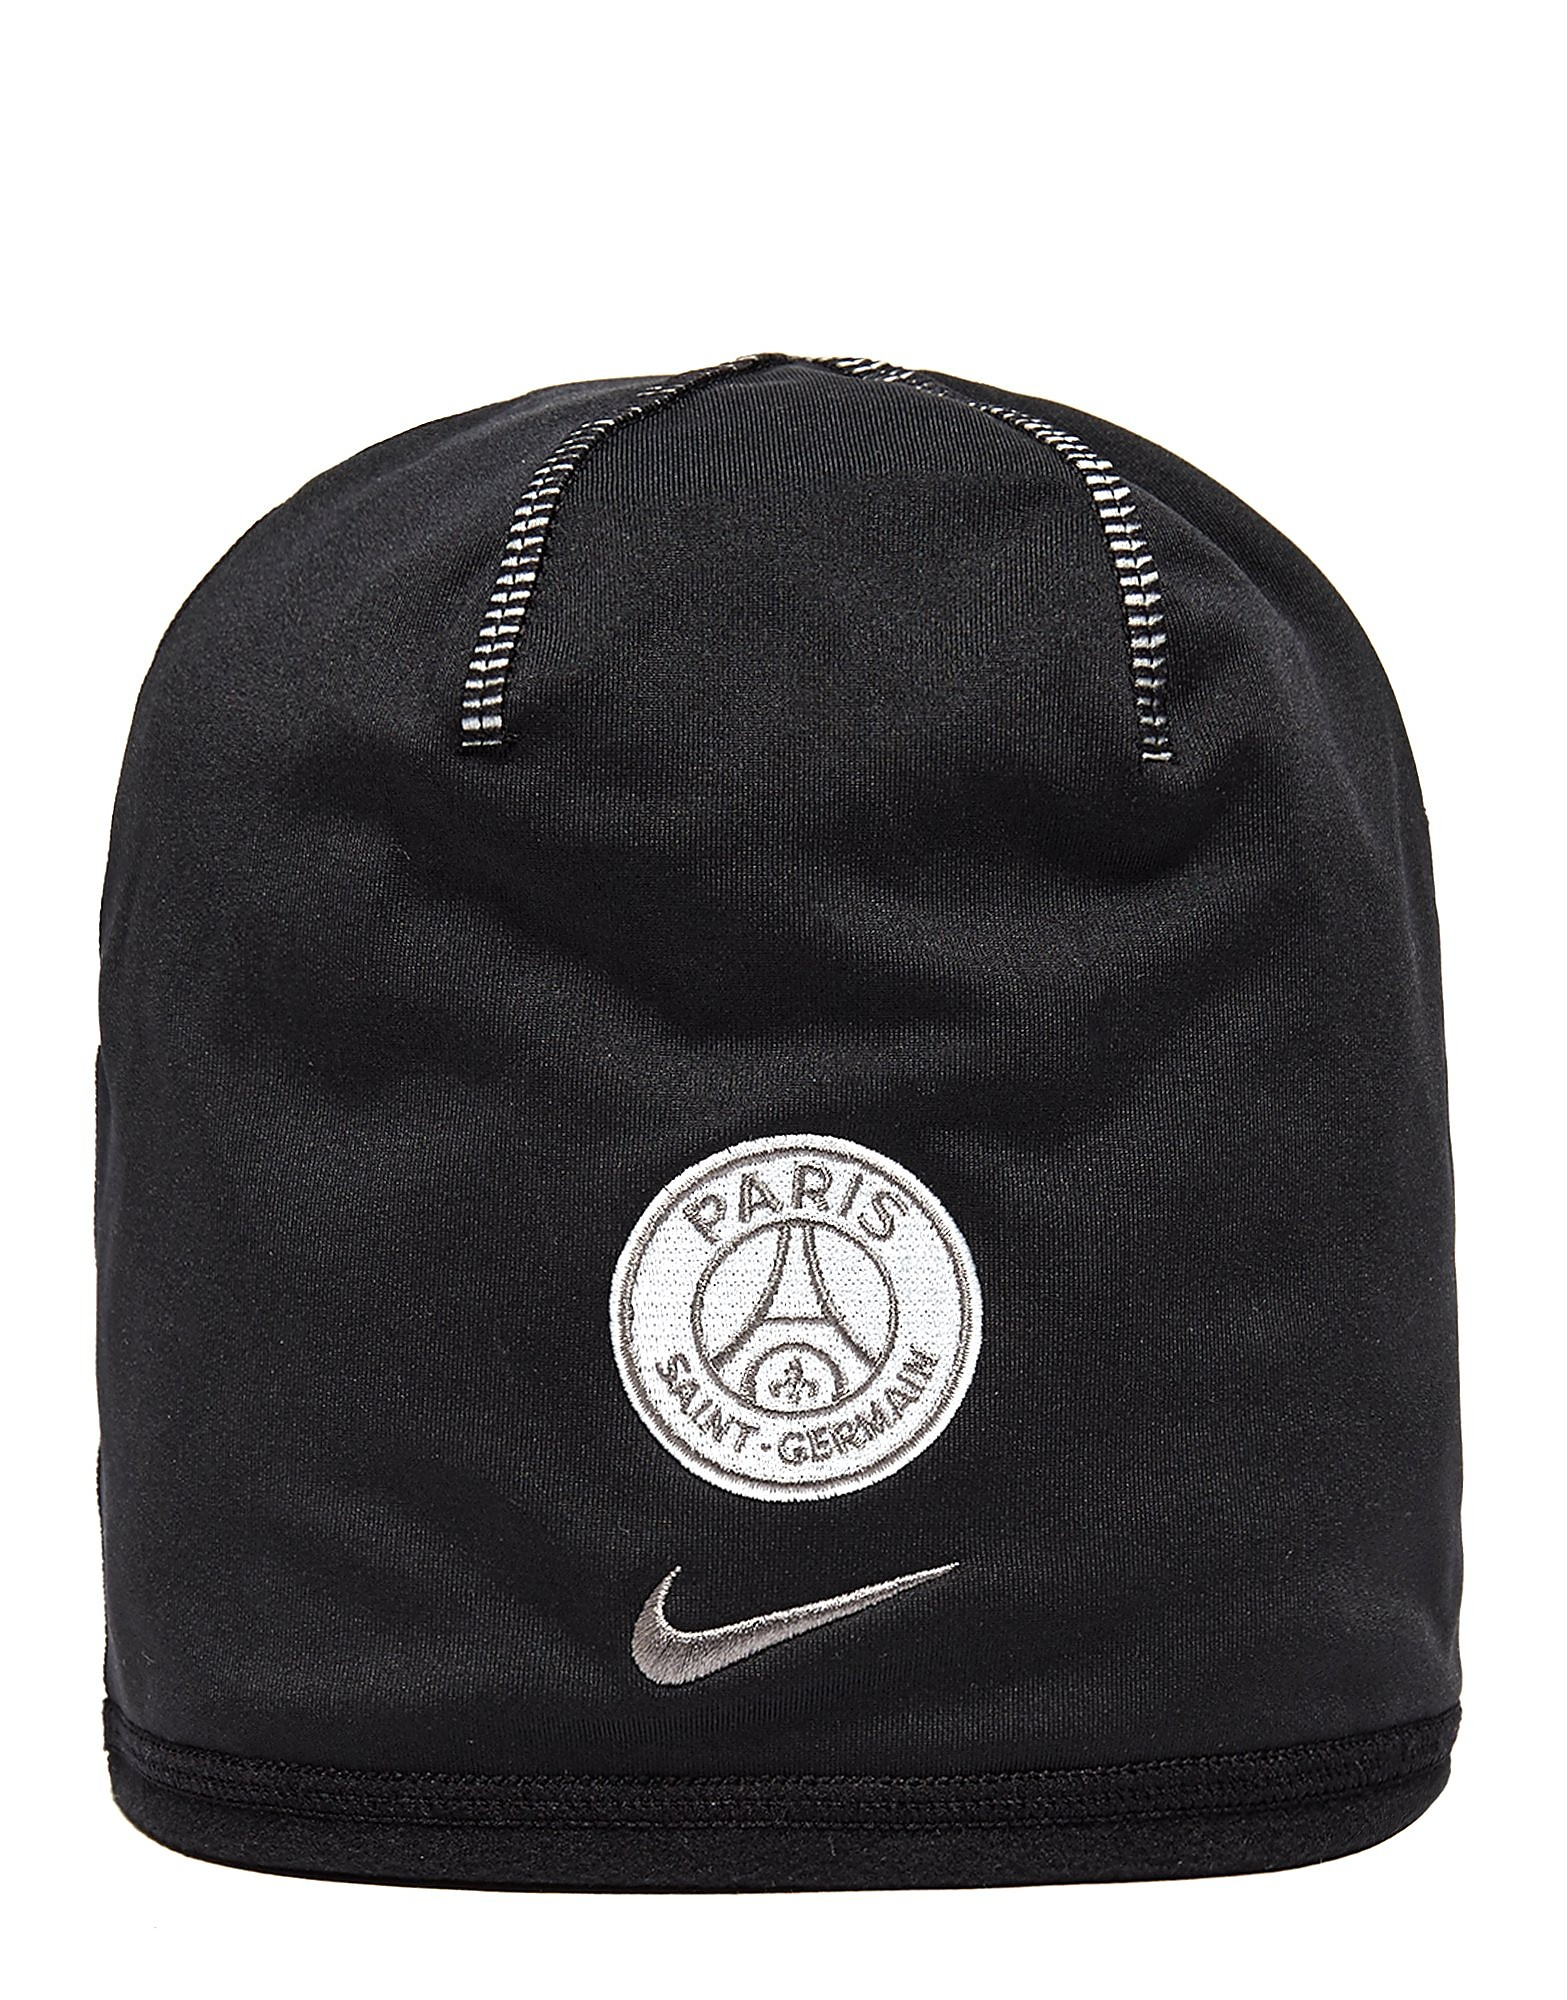 Nike Paris Saint Germain Crest Beanie